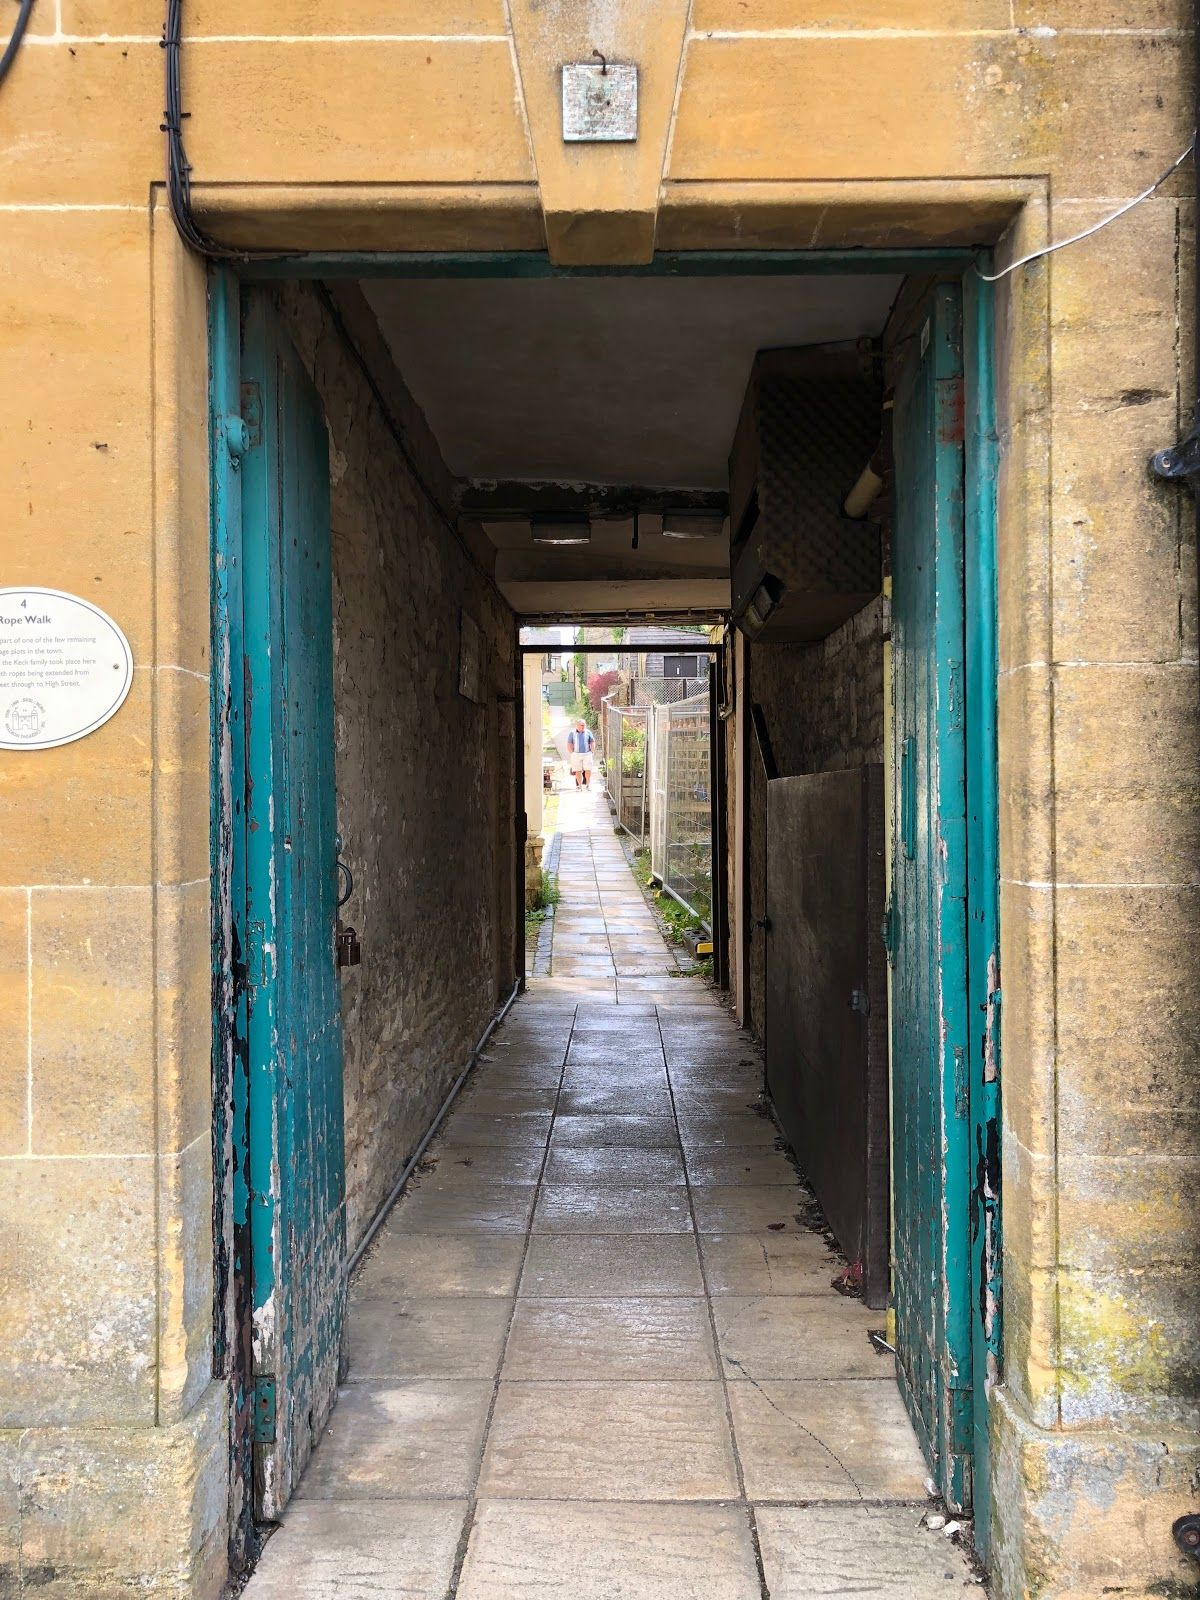 Alley way in Chipping Norton